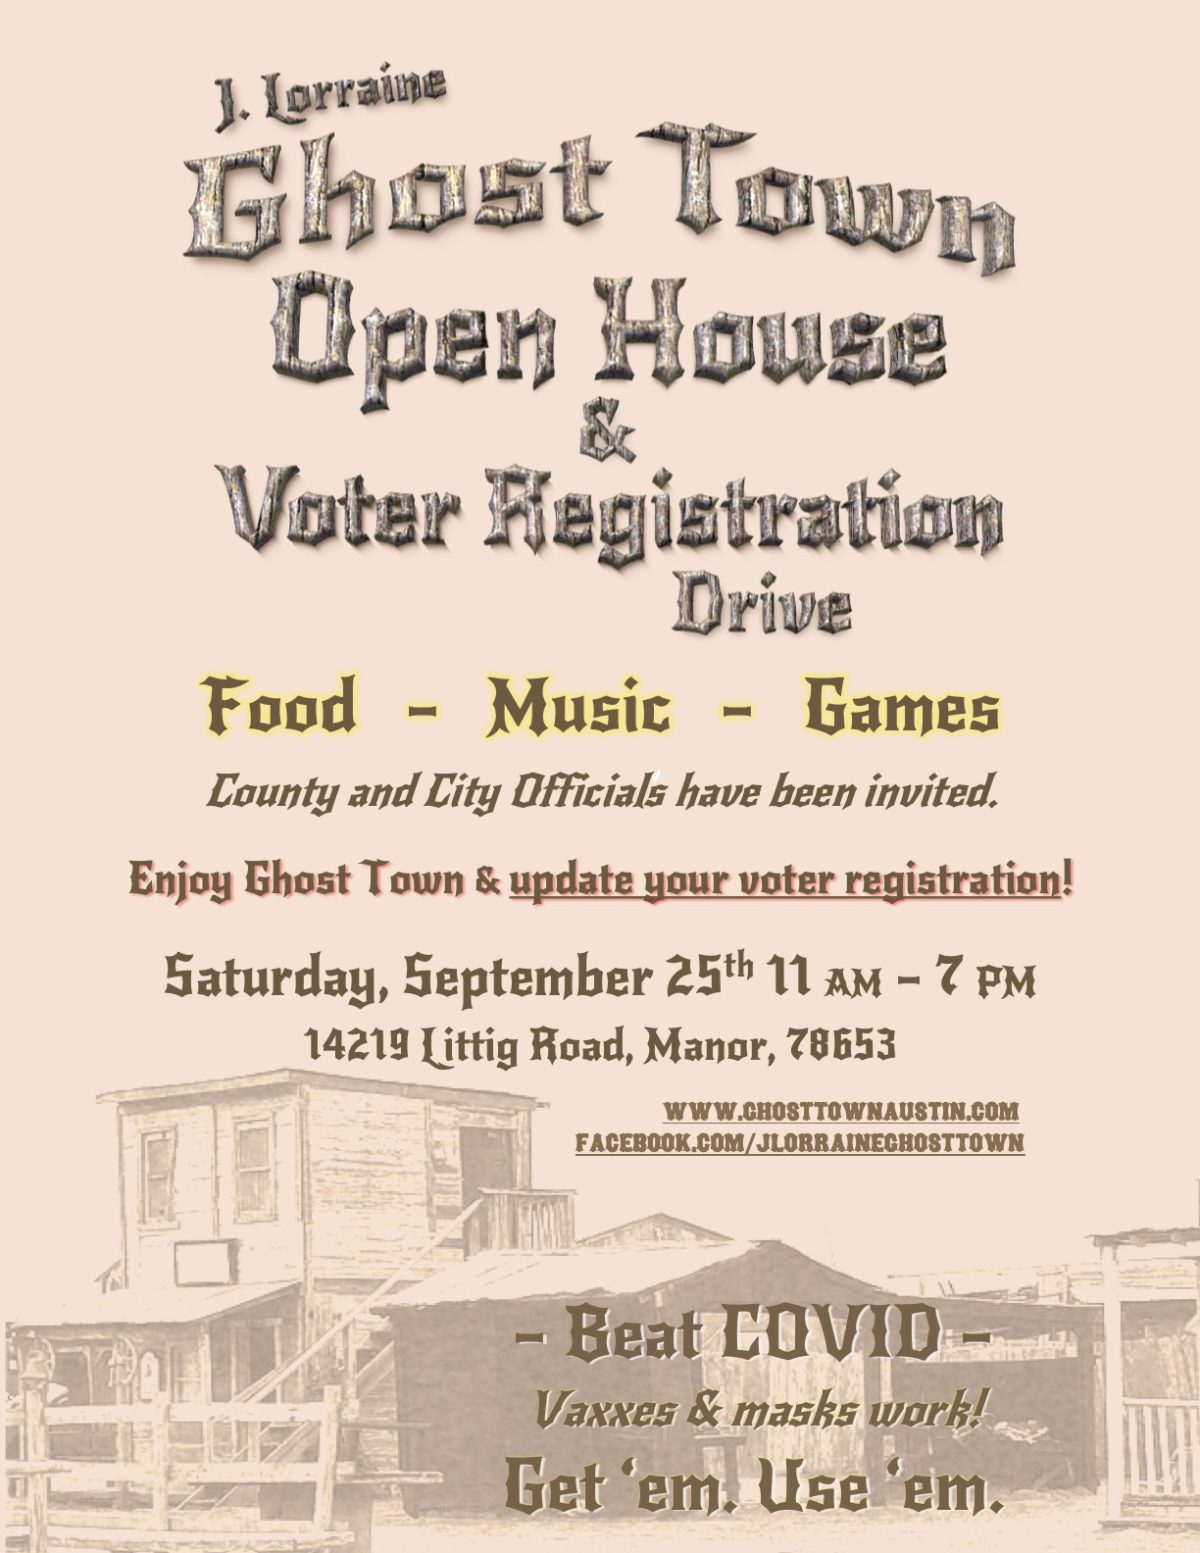 J. Lorraine Ghost Town Open House & VR Drive